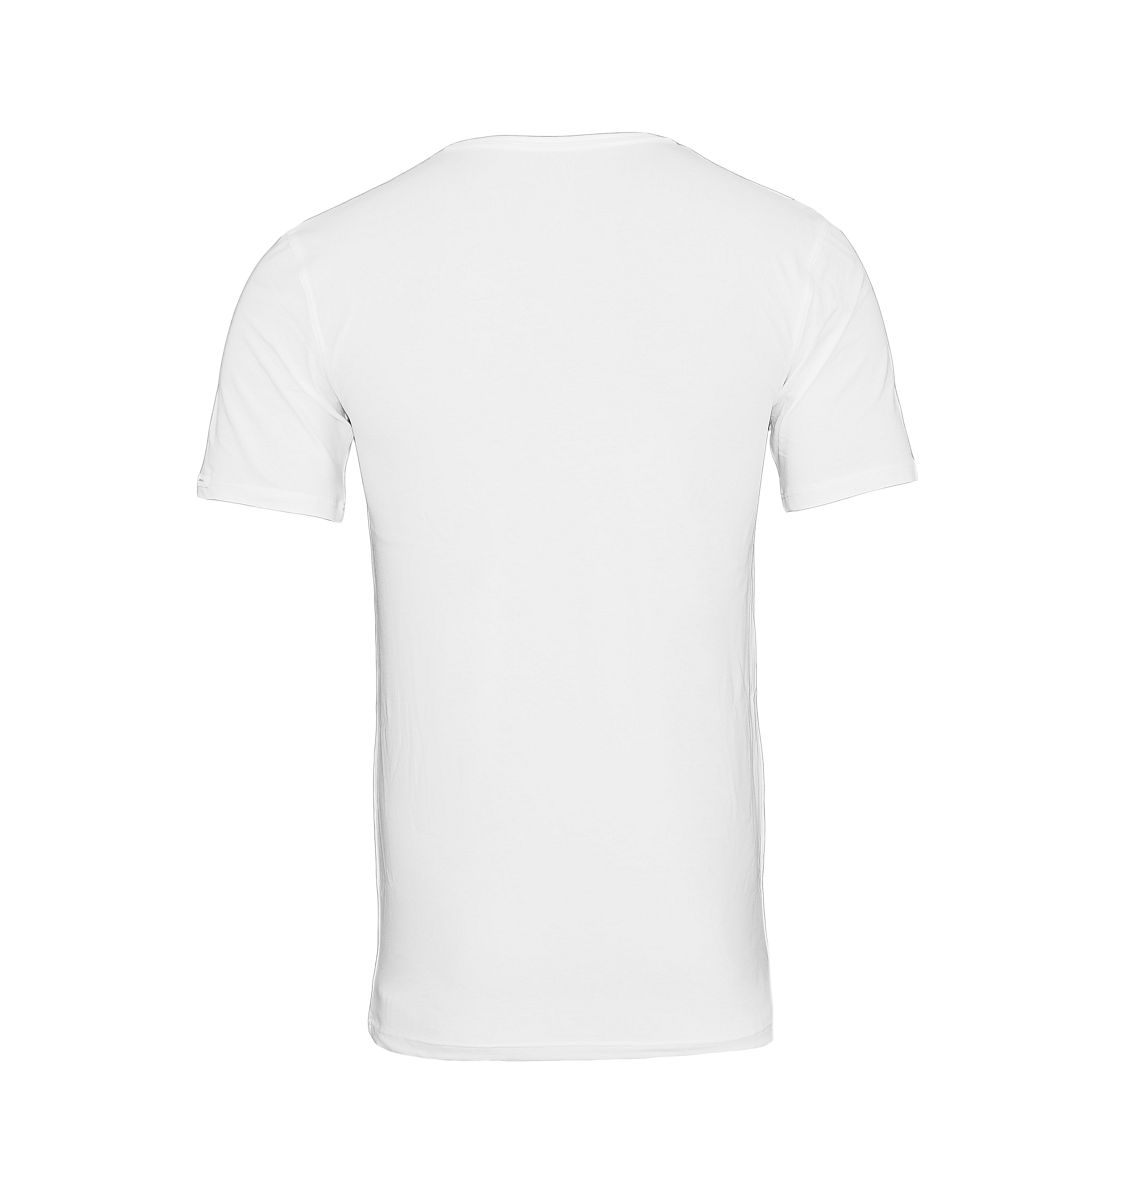 Baldessarini 2er Pack T-Shirts Kurzarm 90005 6061 1004 bright white W18-BST1